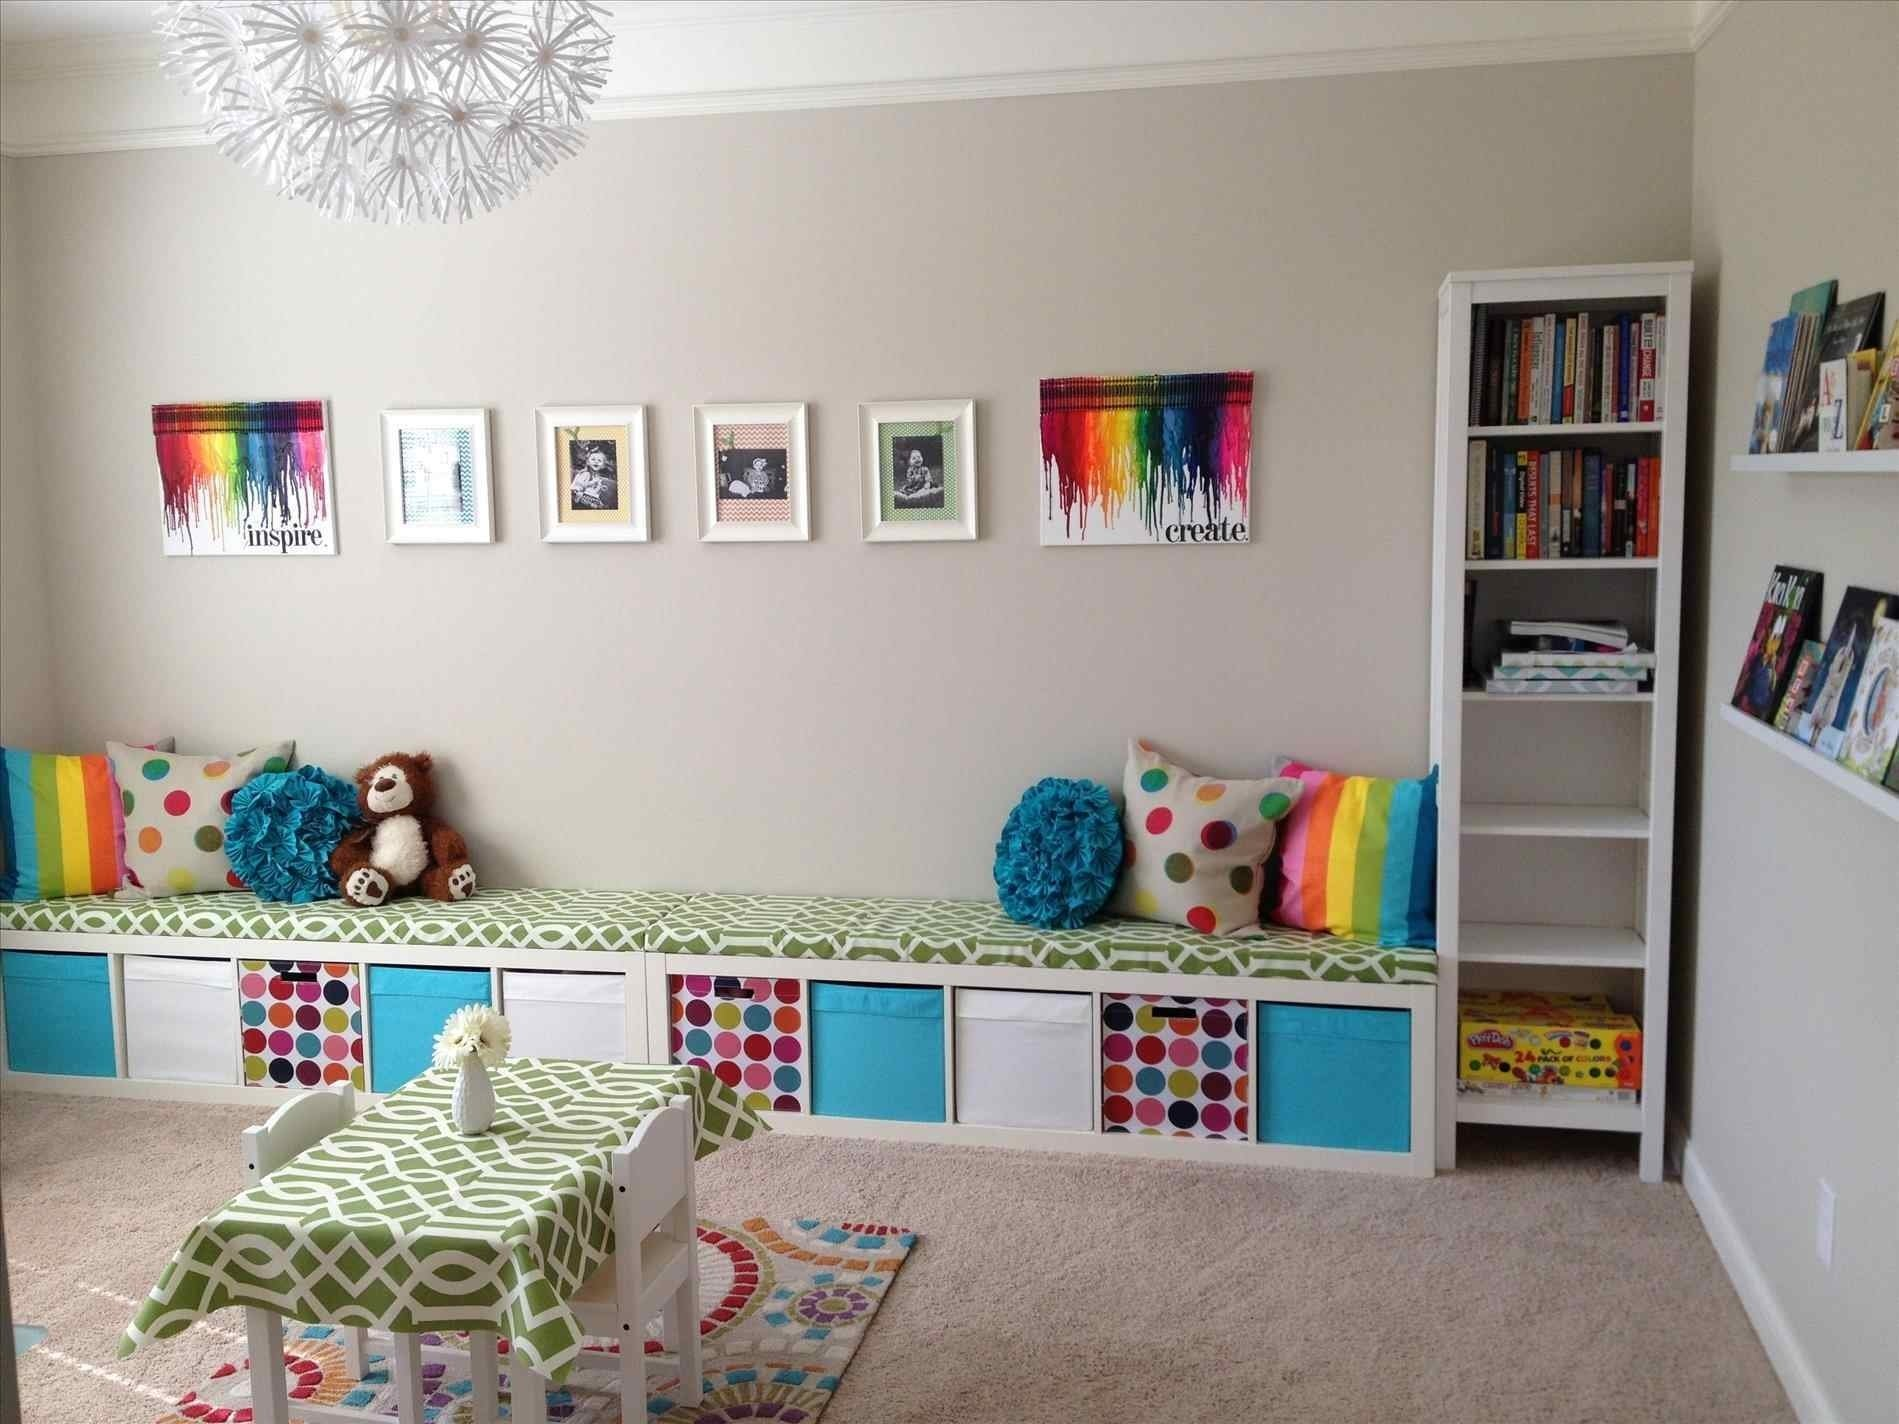 10 Nice Playroom Ideas For Small Spaces inspiring to the ikea diy playroom ideas for small spaces toy room 2020